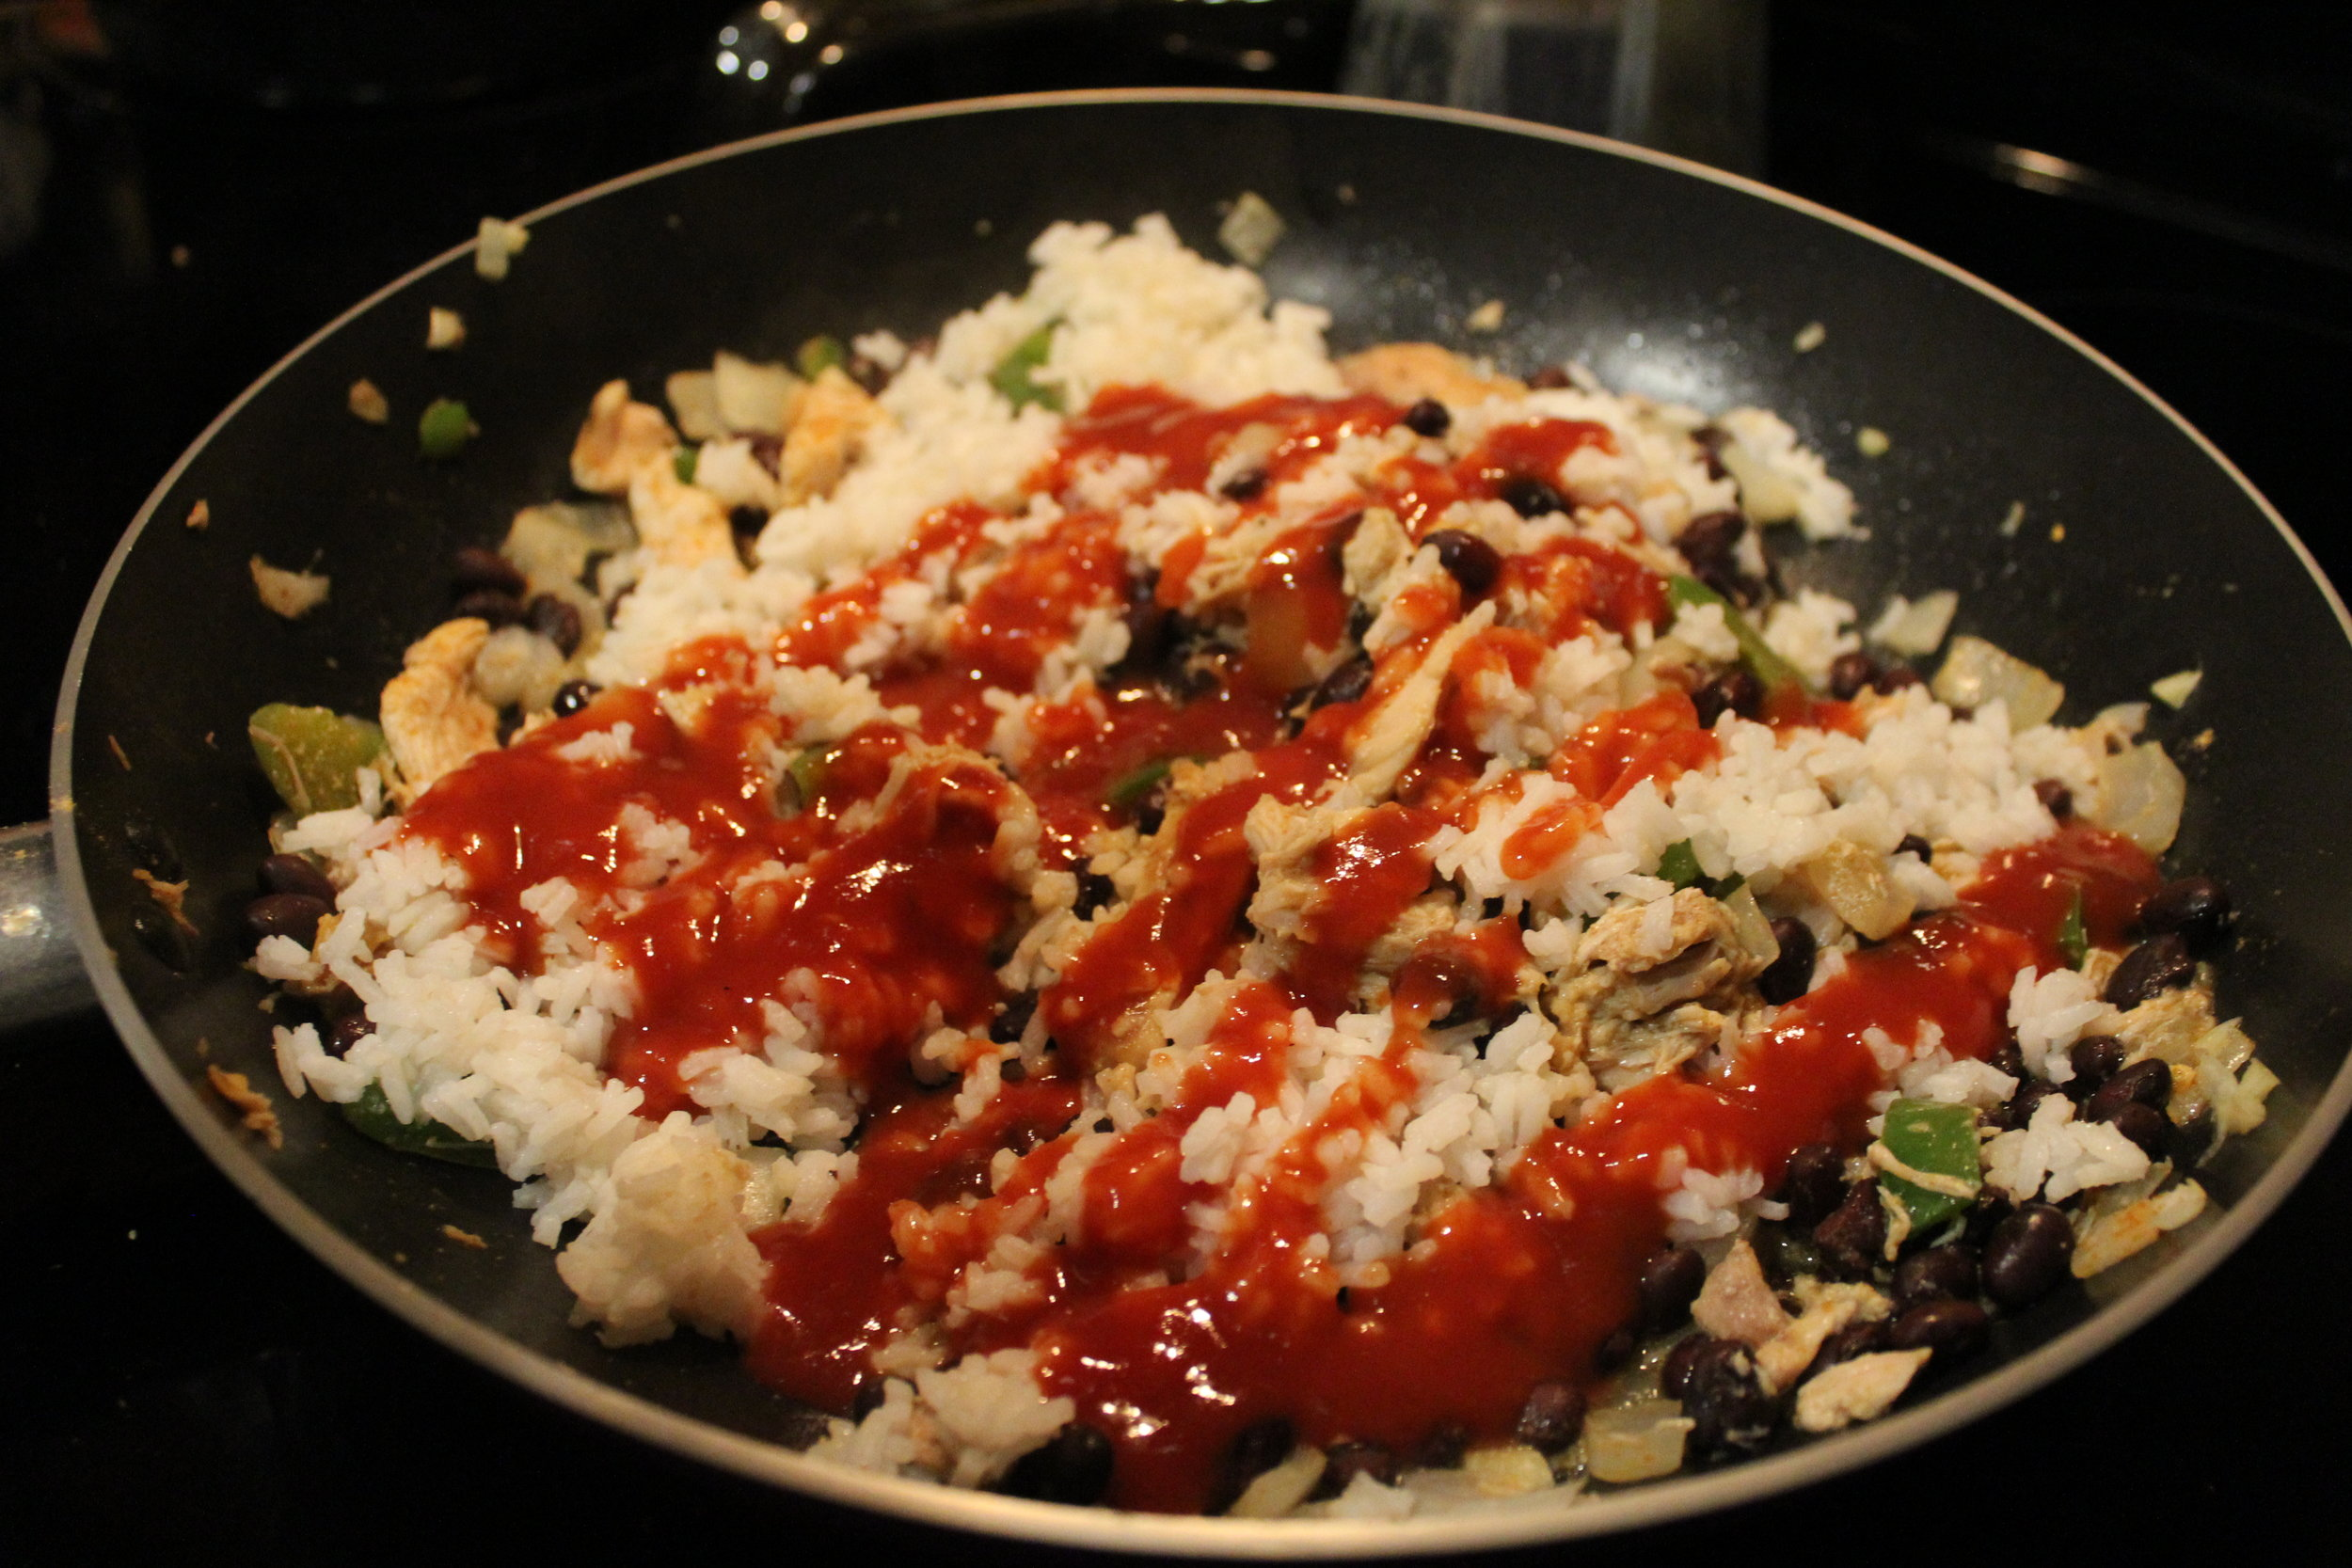 Add in the rice, beans, & sauce. I usually let this cover and simmer until the rice is cooked (of course I use the 5 minute quick rice), this lets the flavors blend together. Ethan loves him some taco sauce - there's never enough.